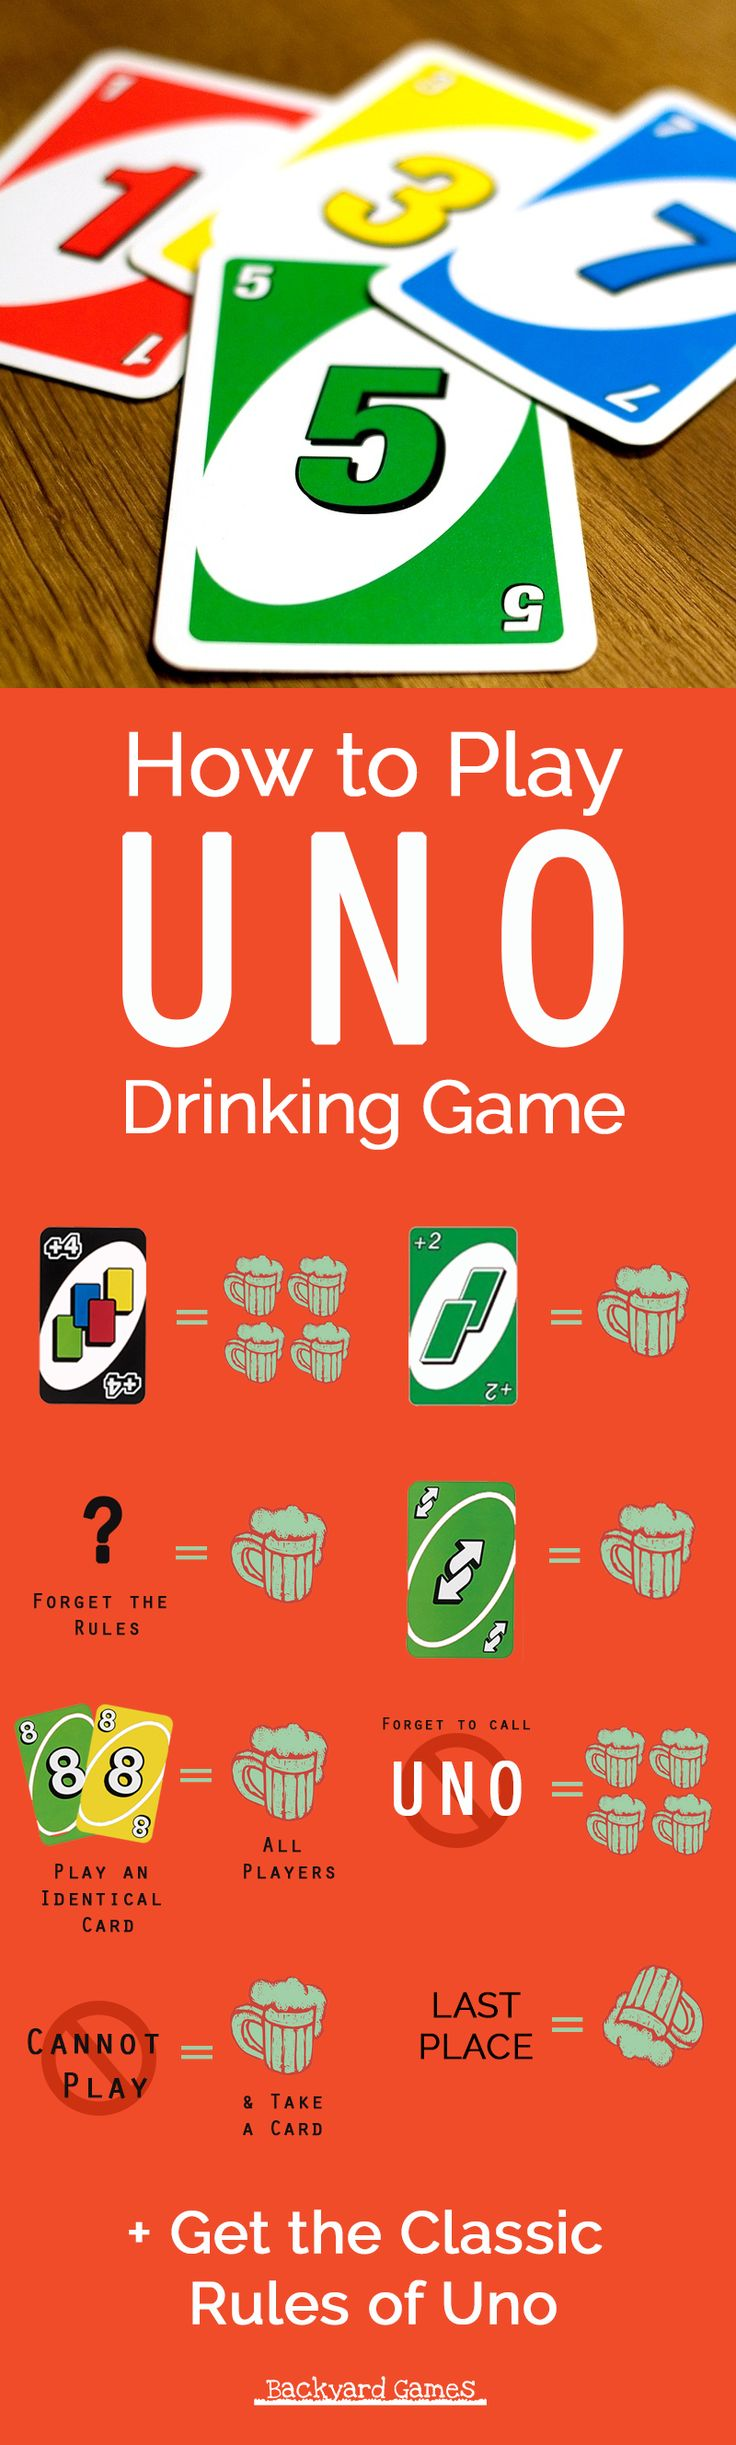 Uno Drinking Game Rules!  Not just a childhood classic game, all you need is a deck of Uno, some beverages and friends.  You would be surprised how many times people forget these simple rules in this game, that equals a drink.